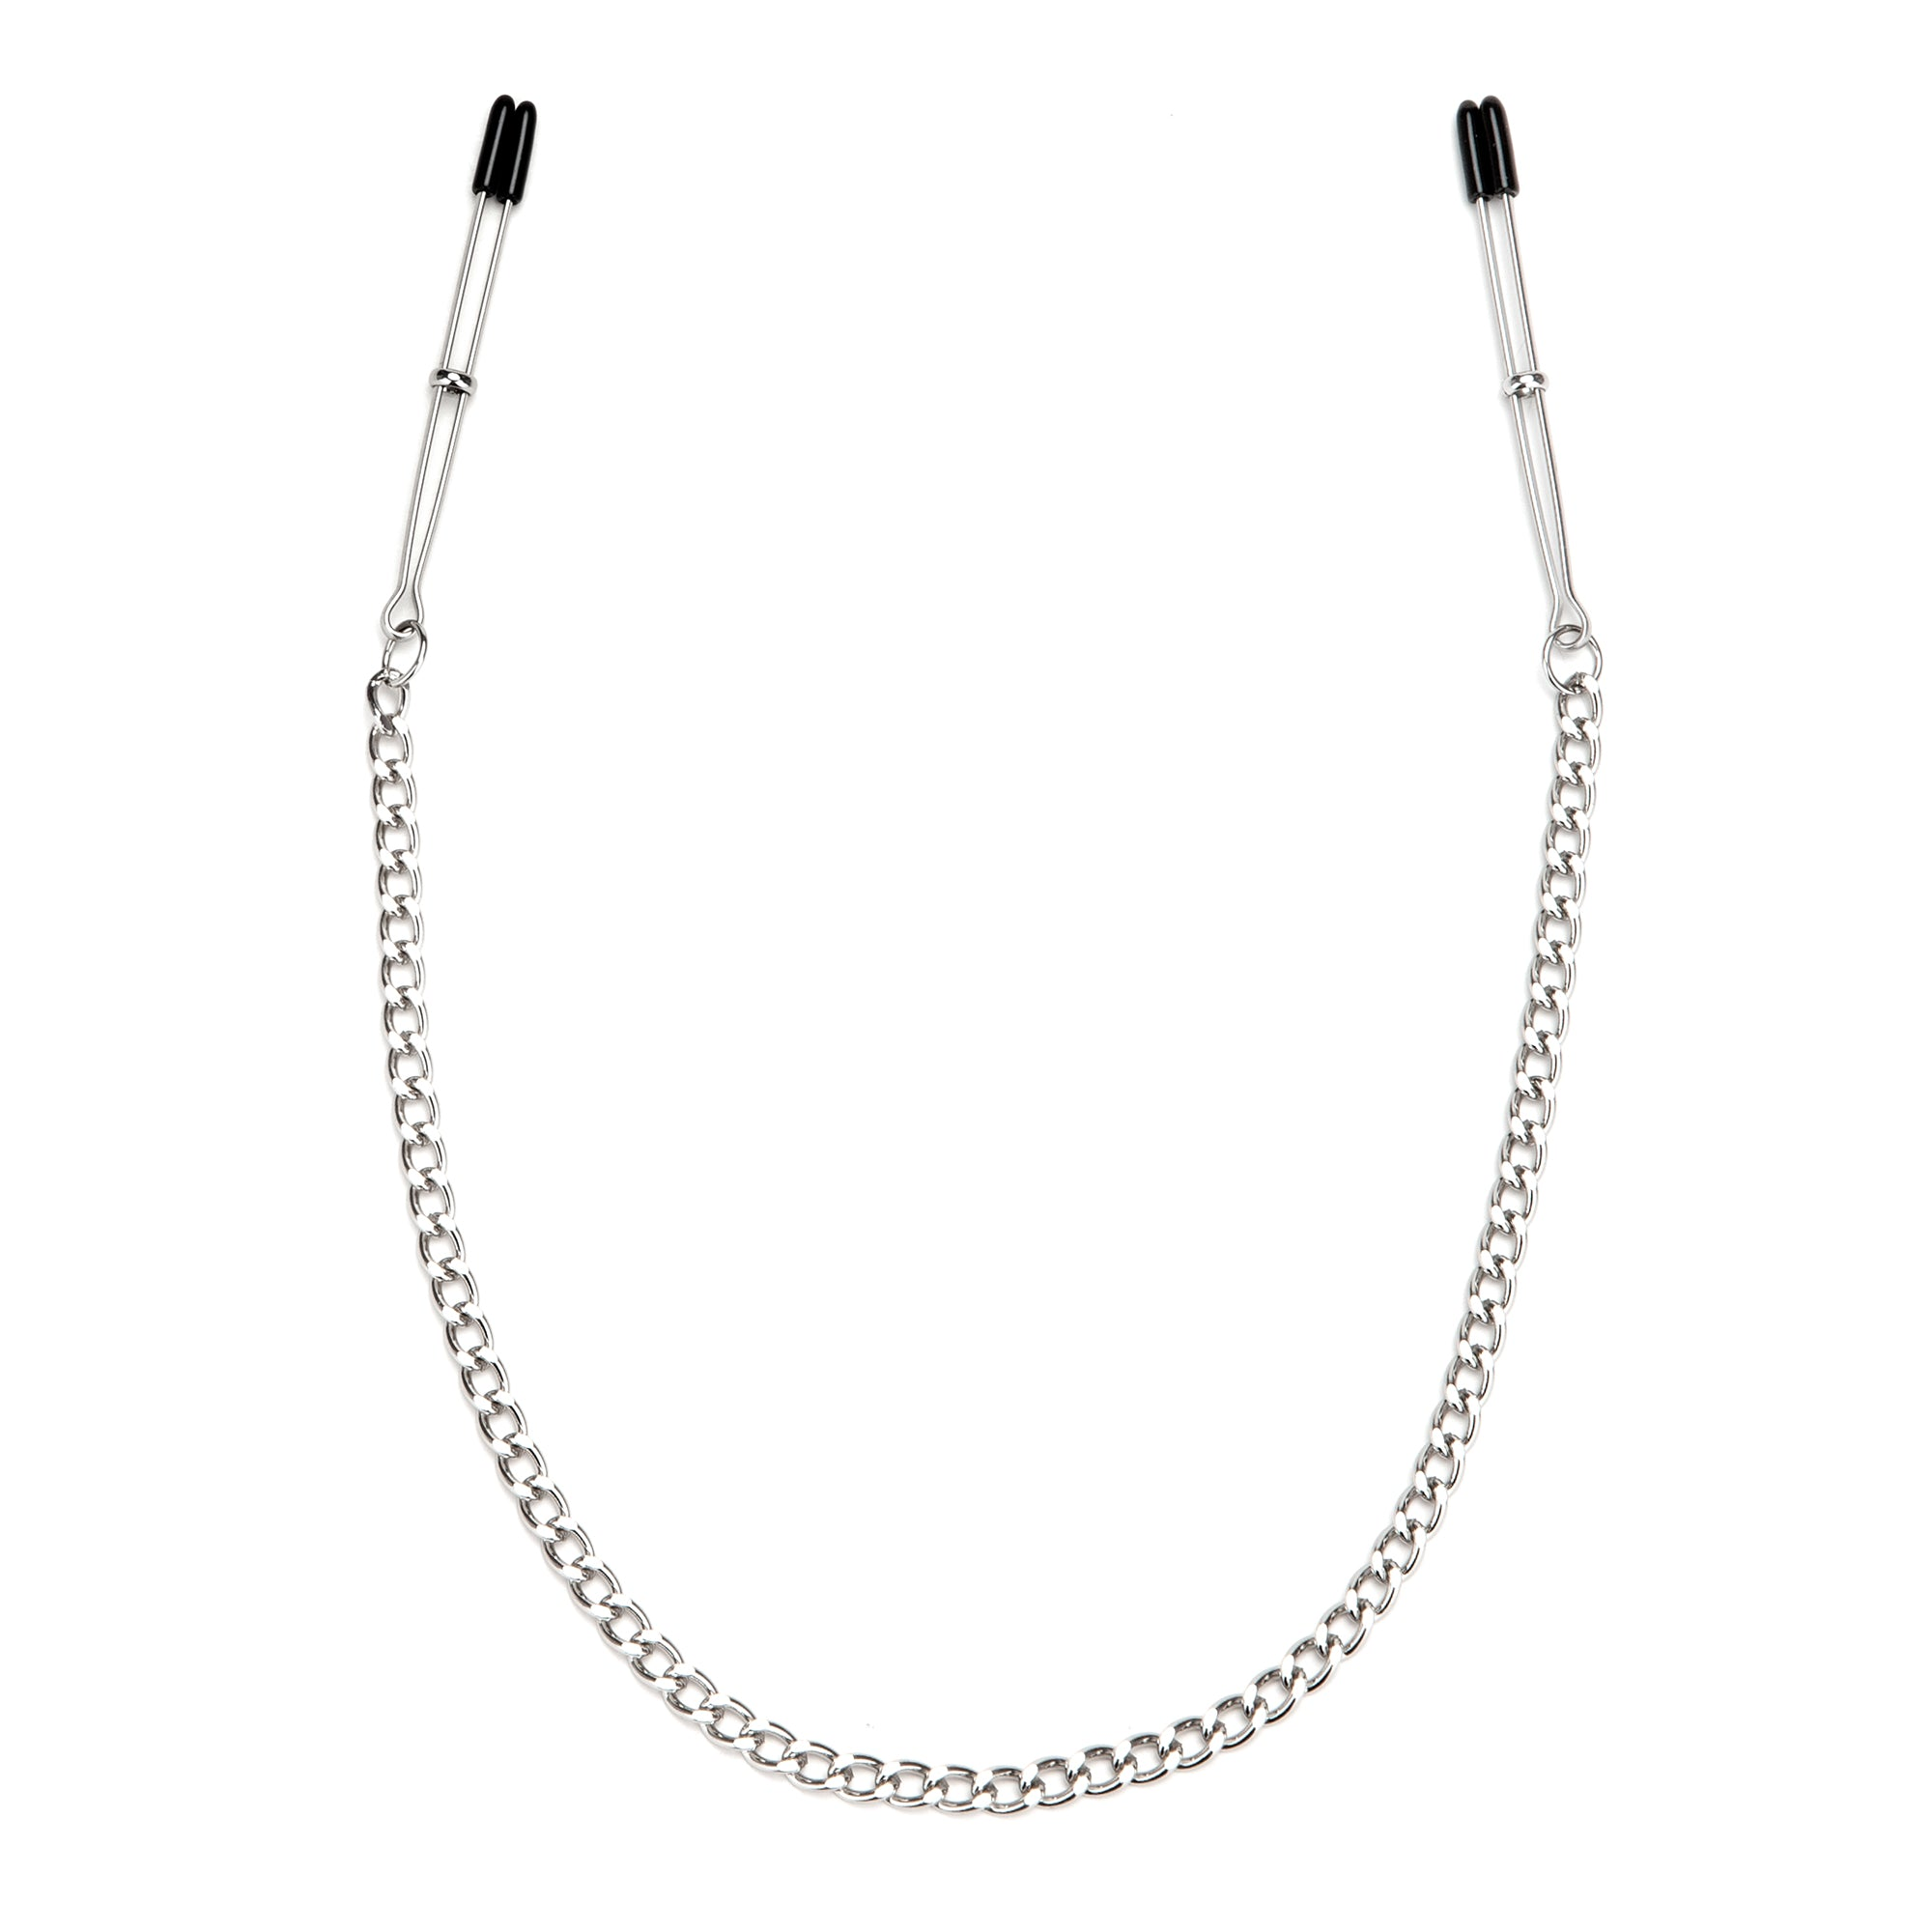 Lux Fetish Adjustable Tweezer Nipple Clips With Chain